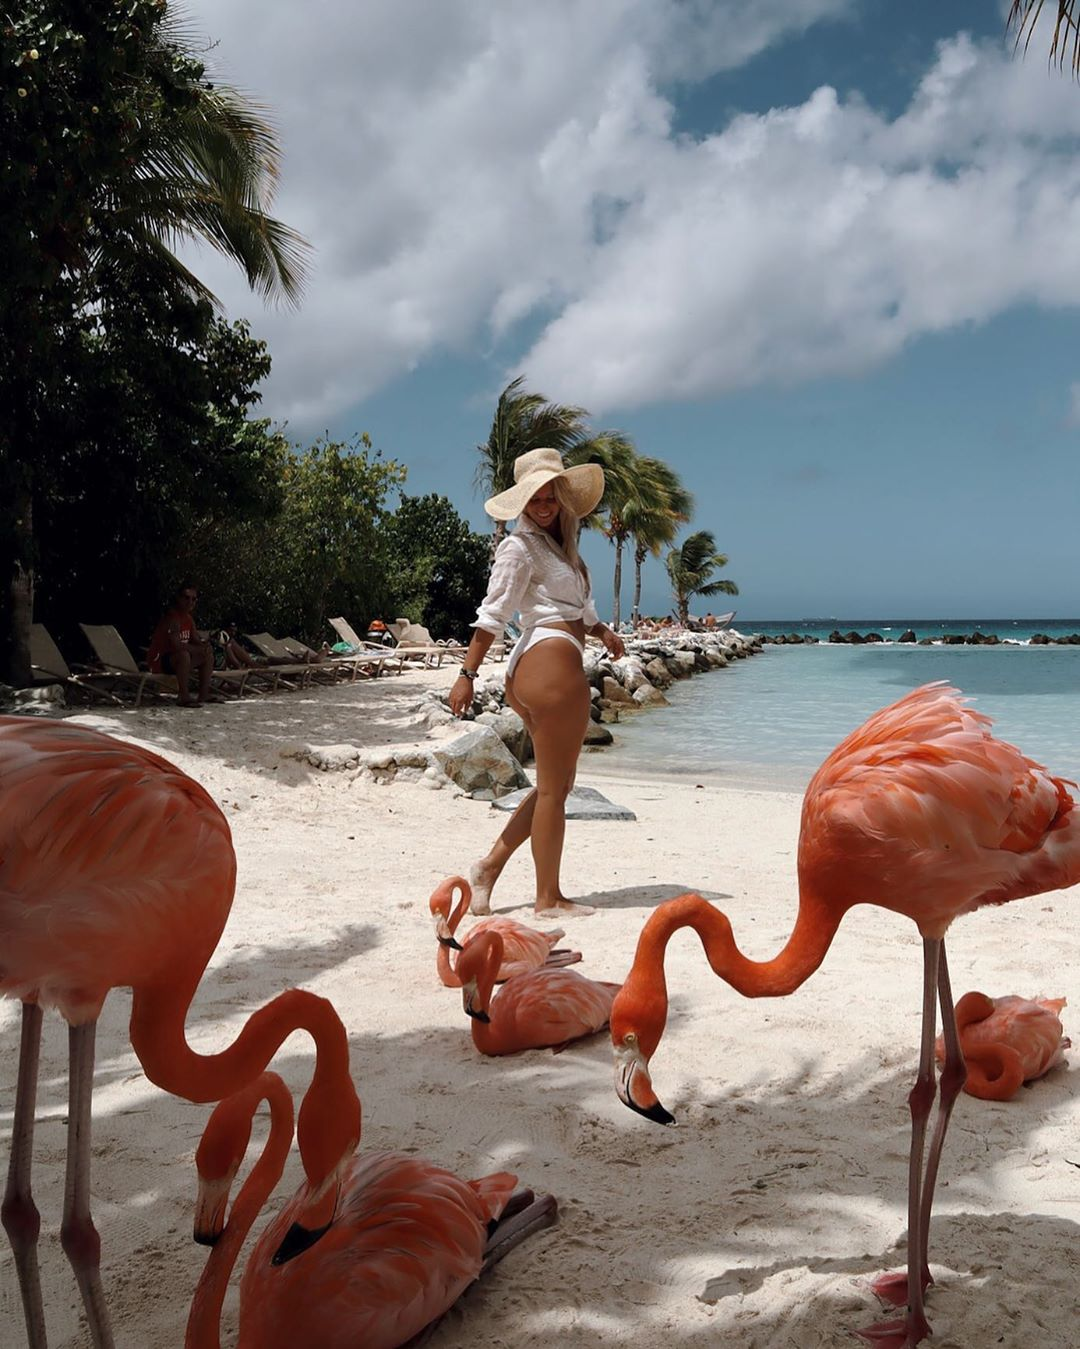 Honeymoon Ditemani Flamingo Pantai di Aruba Resort 11